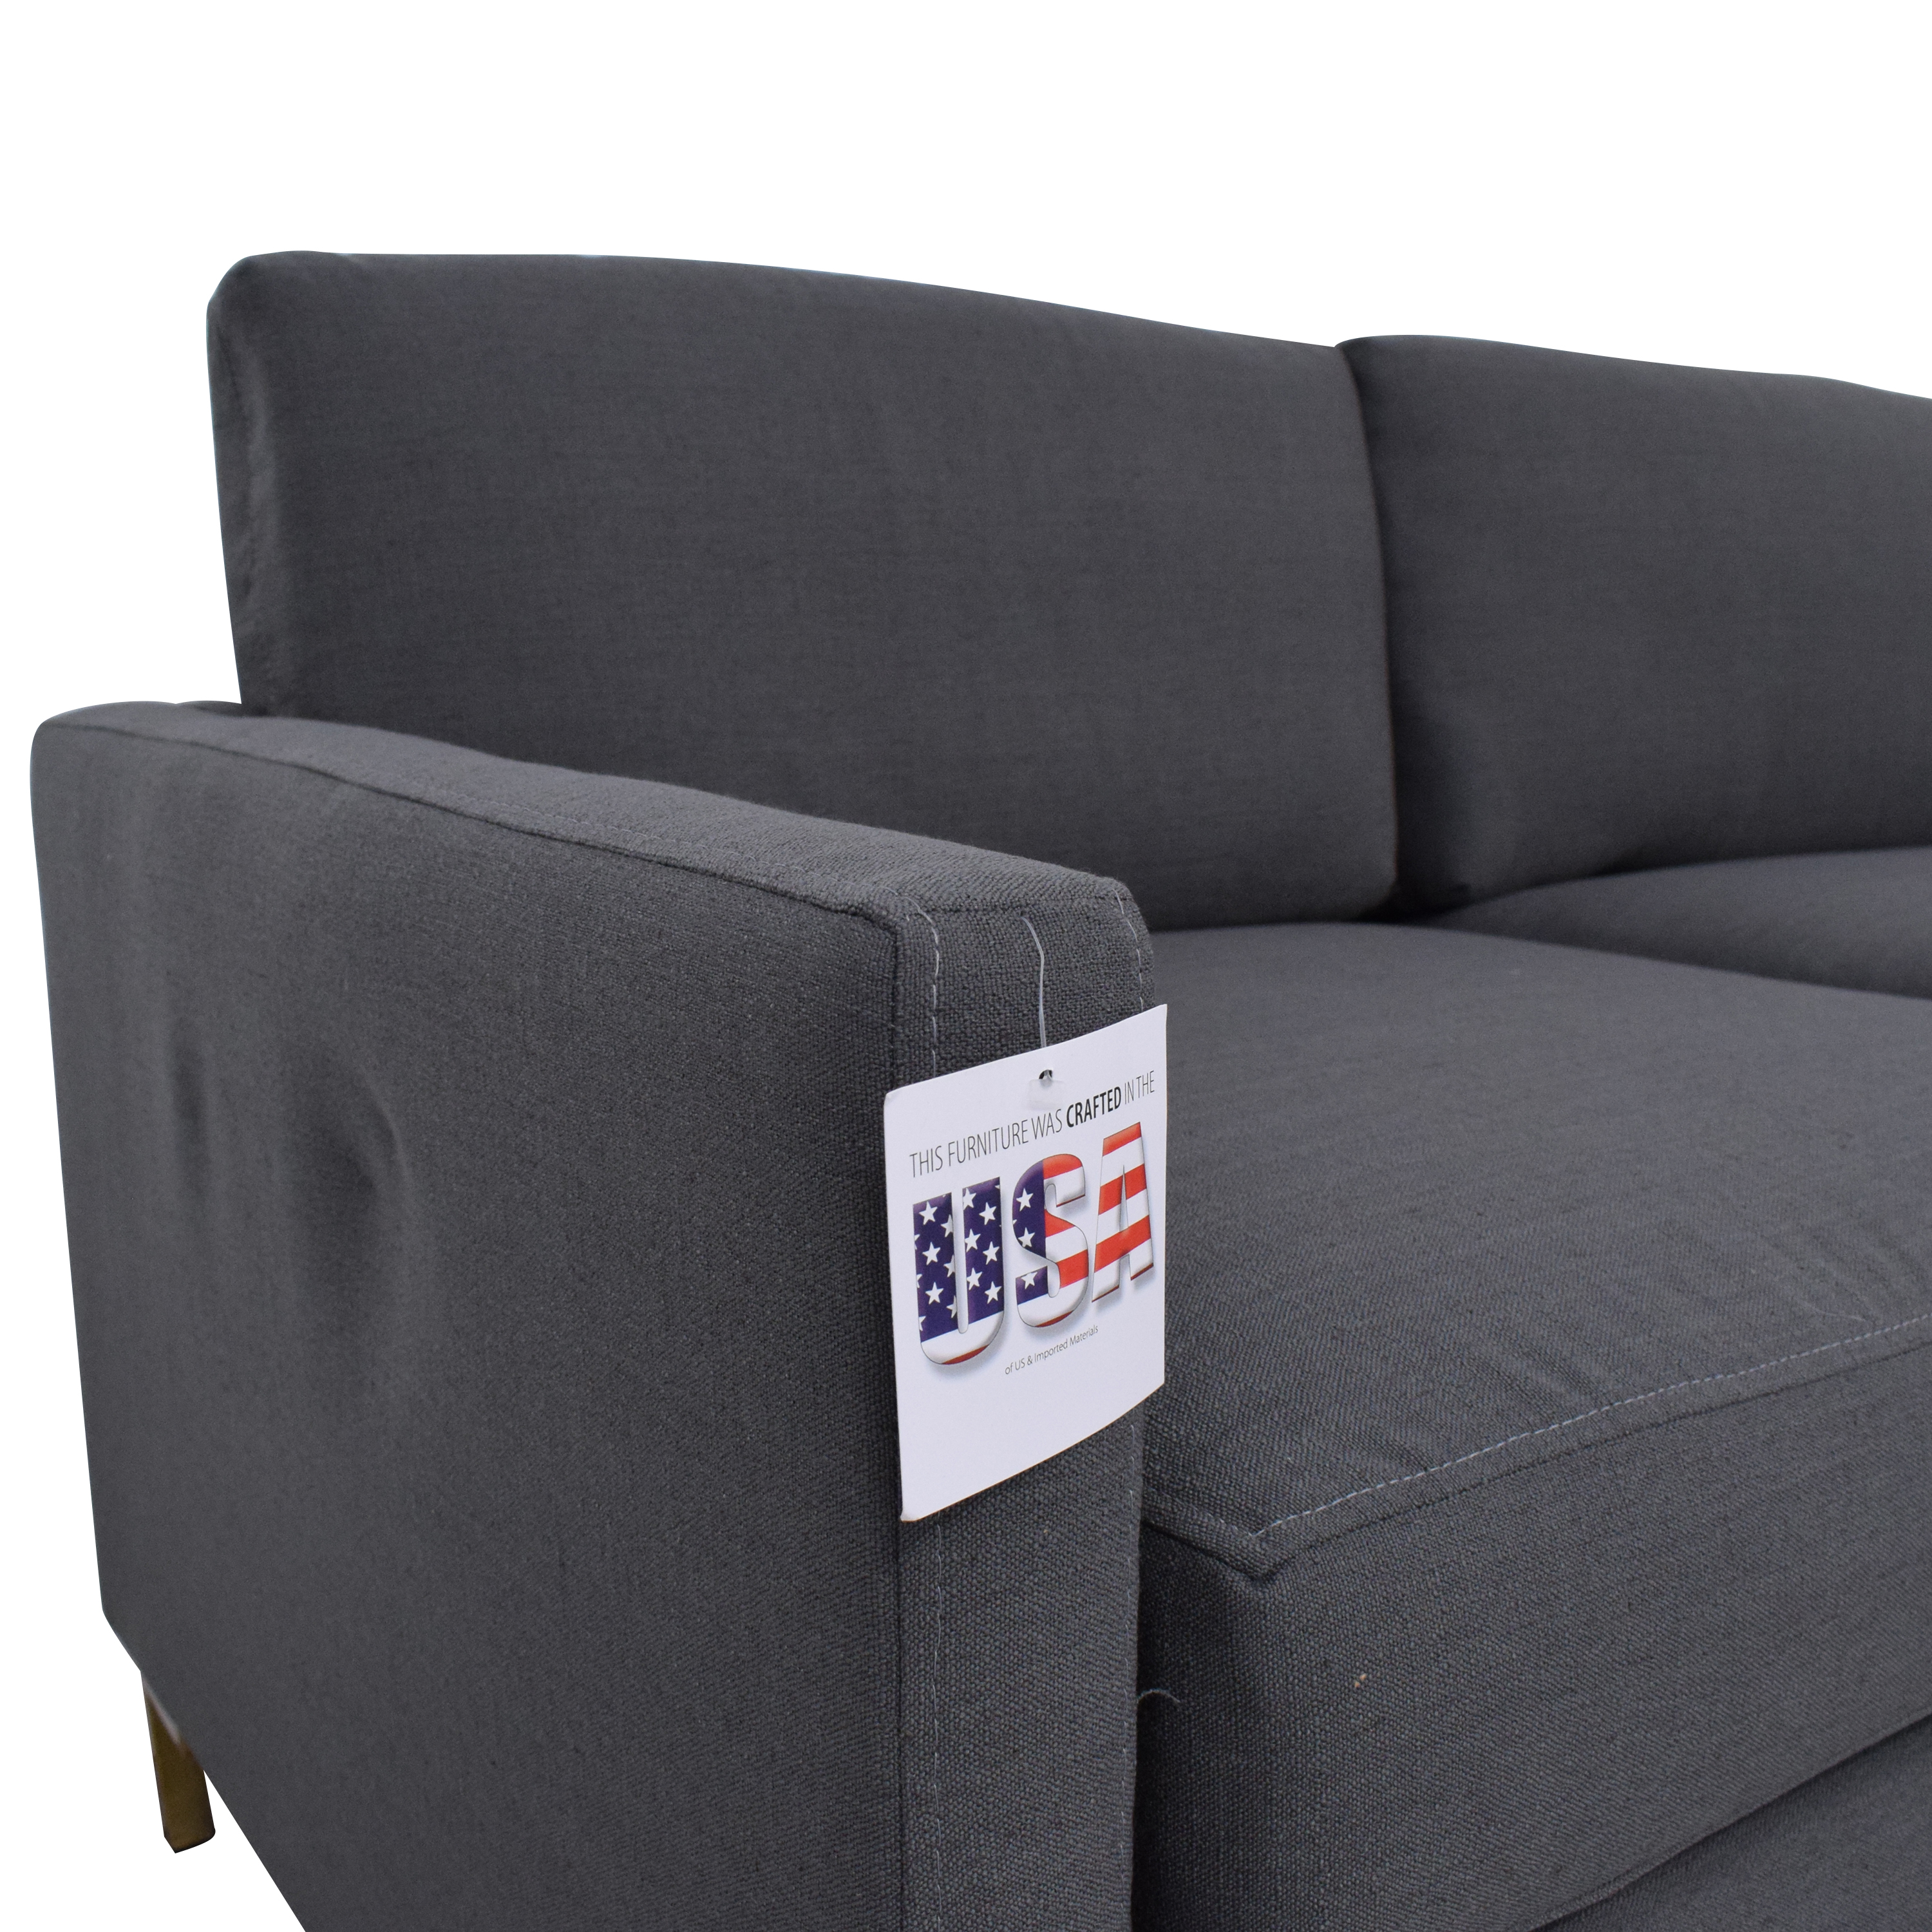 buy The Inside The Inside Modern Sectional-Right Facing online